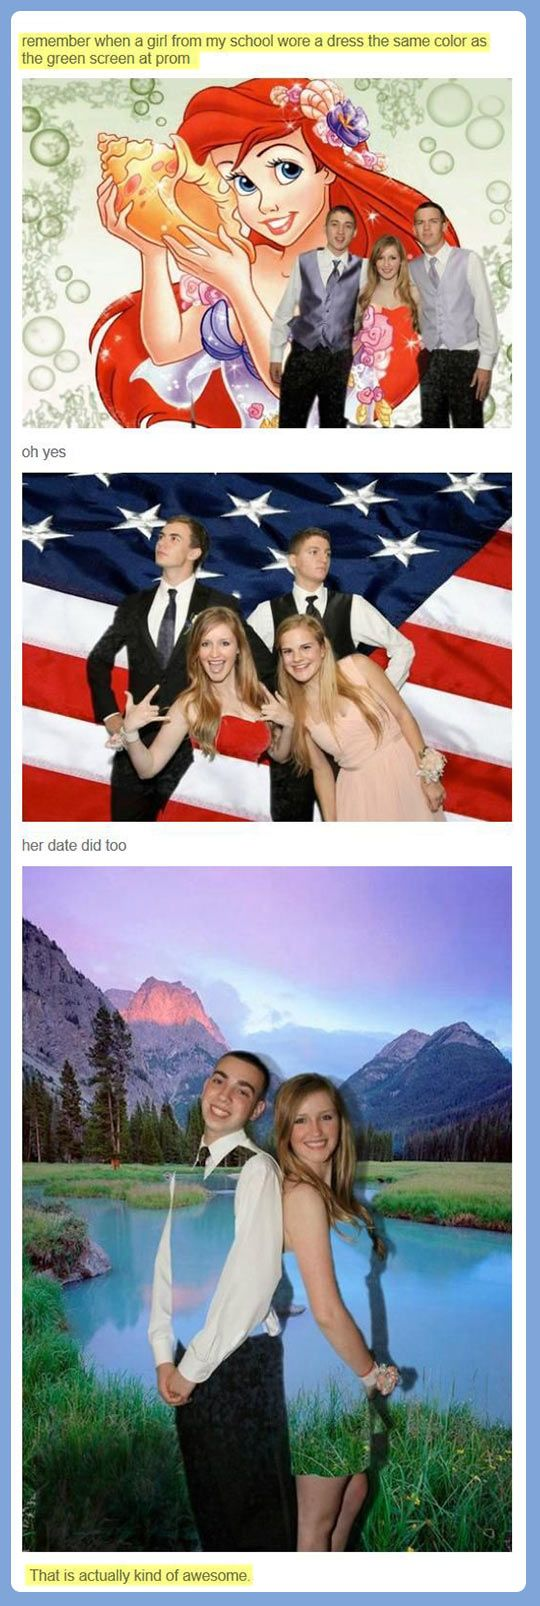 This rocks...but I had ZERO idea proms now had green screens as photo back drops = OLD